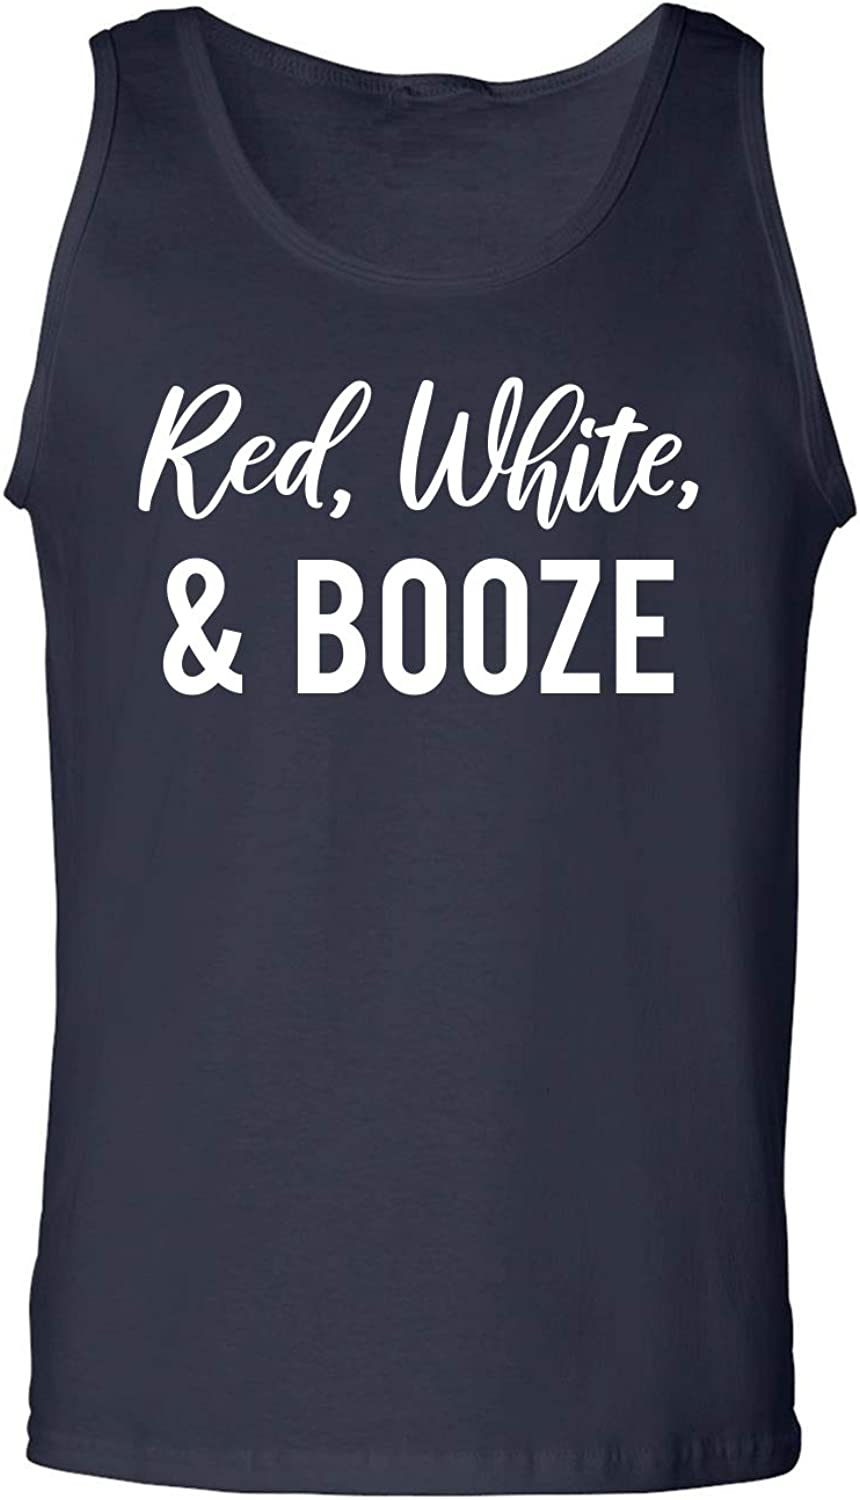 Red, White & Booze Adult Tank Top